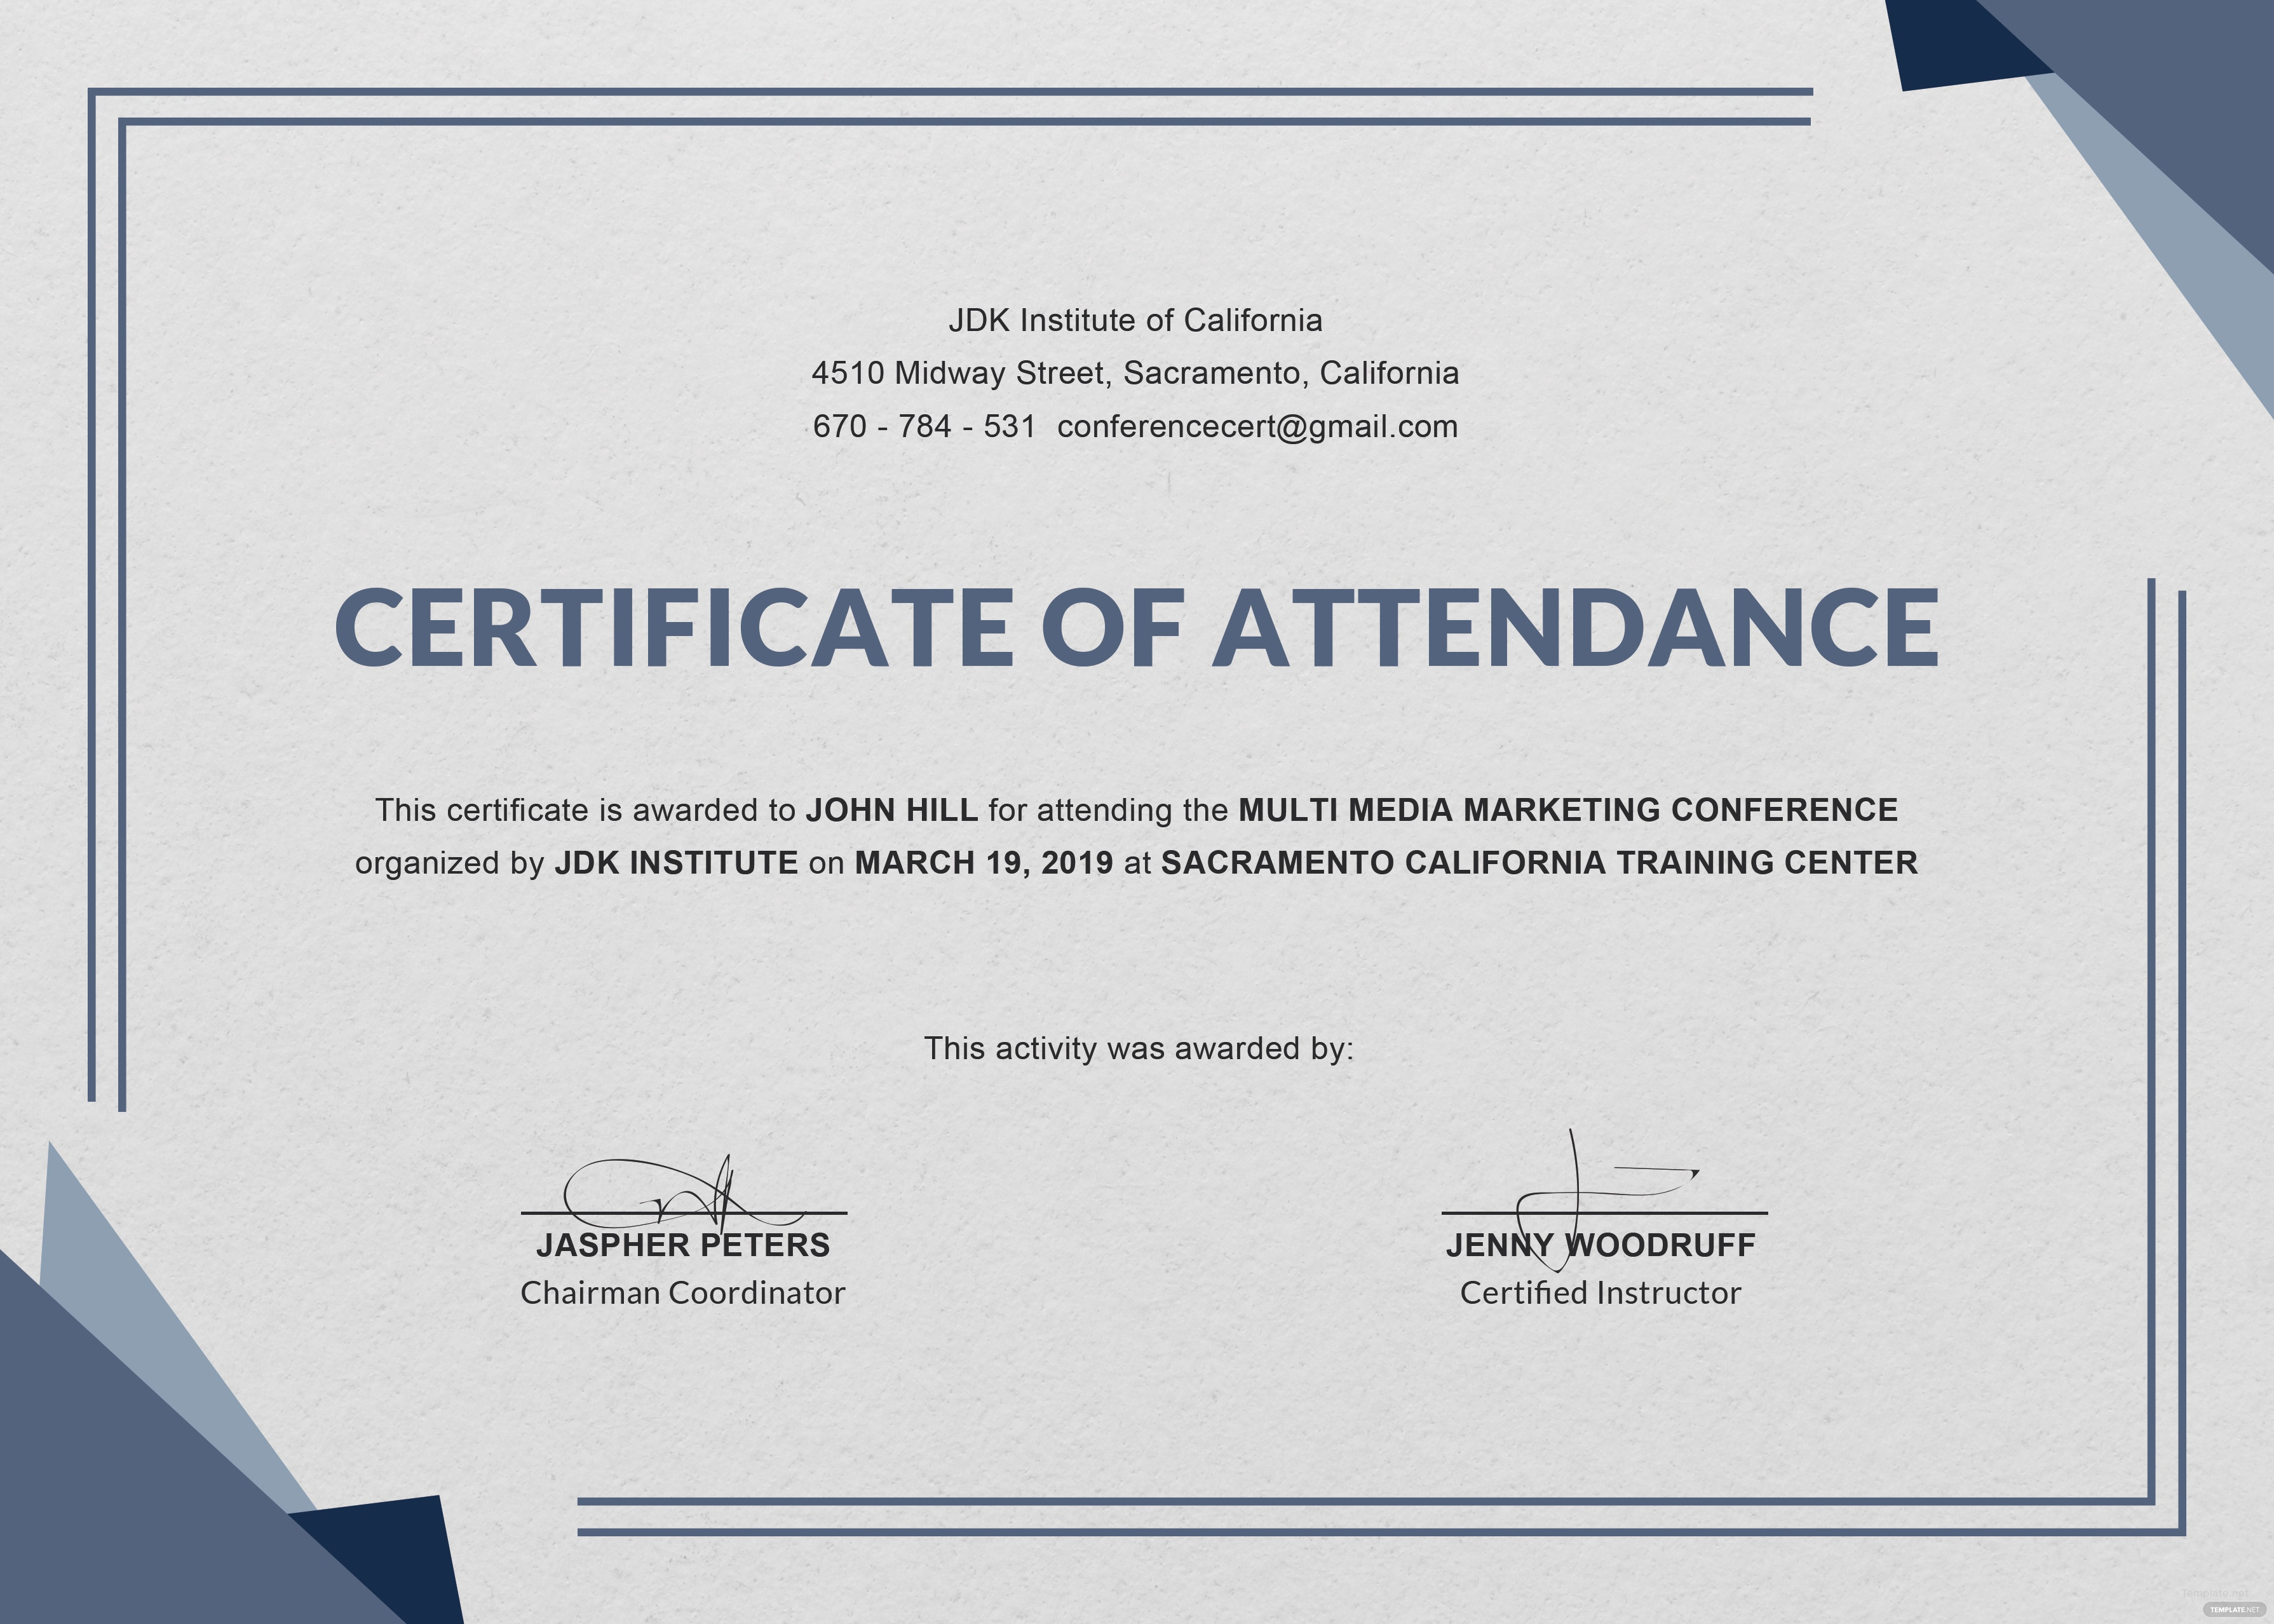 Free Conference Attendance Certificate Template In Adobe